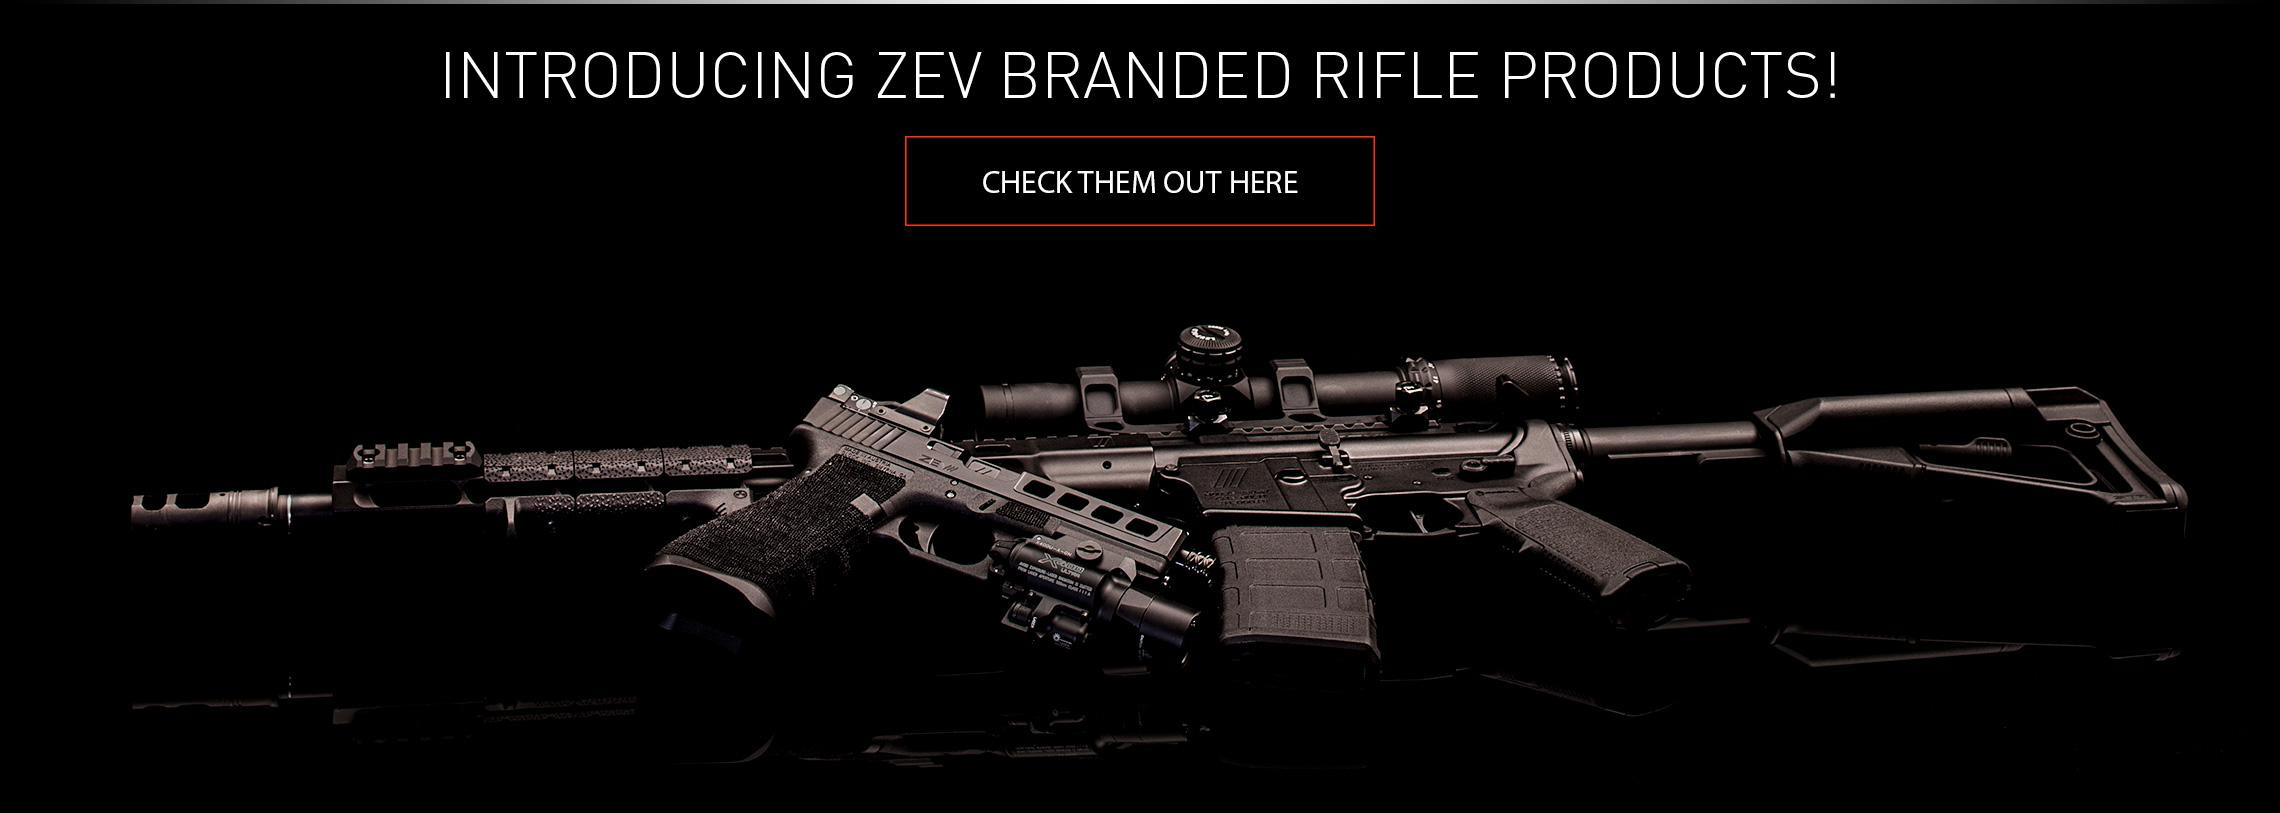 ZEV Technologies NEW Rifle Products